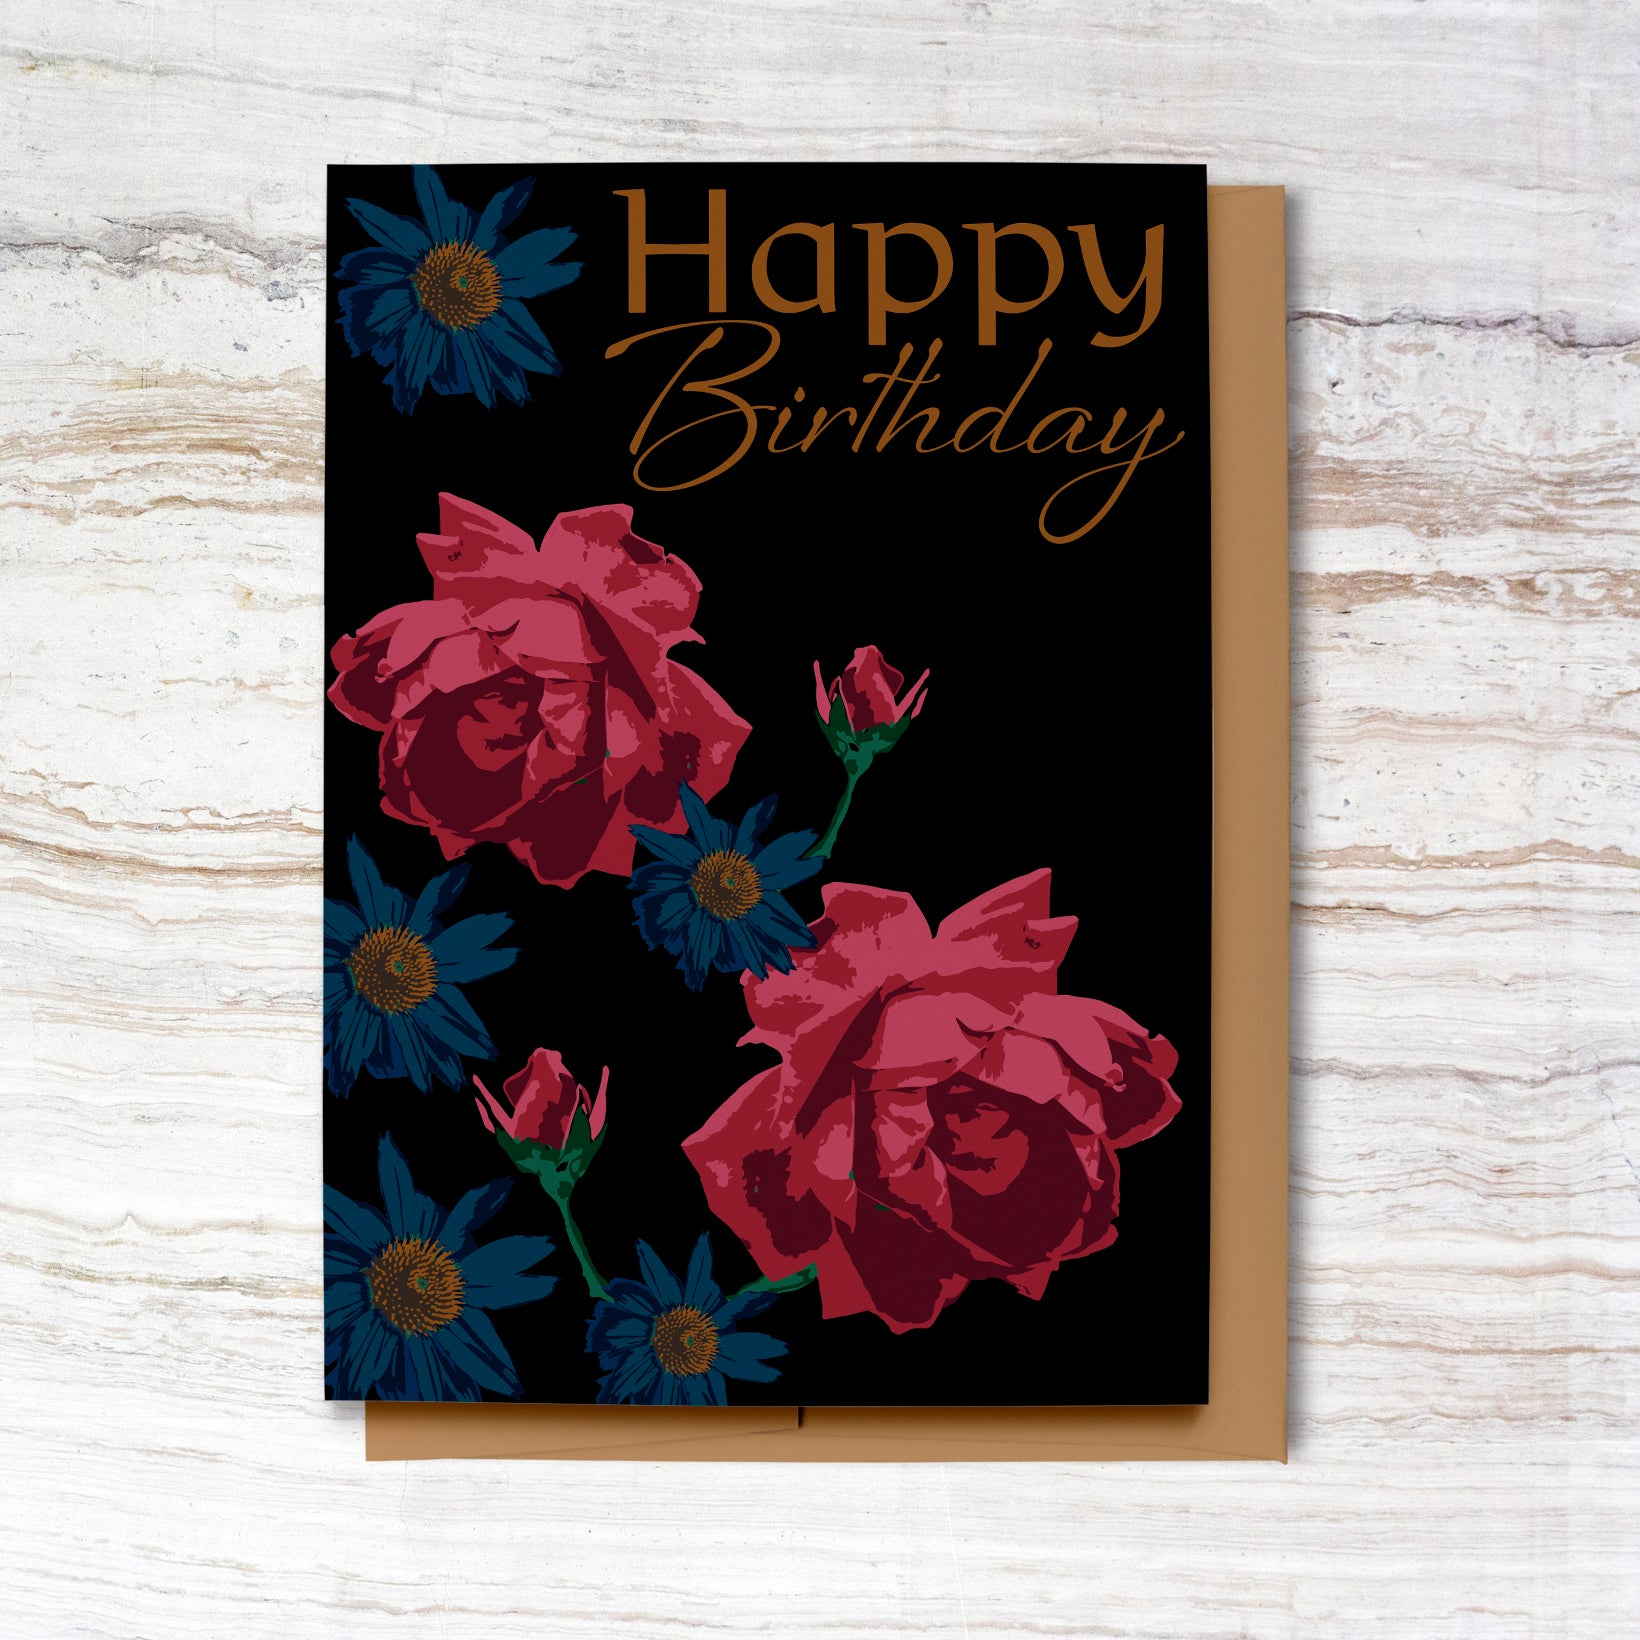 New! Moody Roses Happy Birthday Card